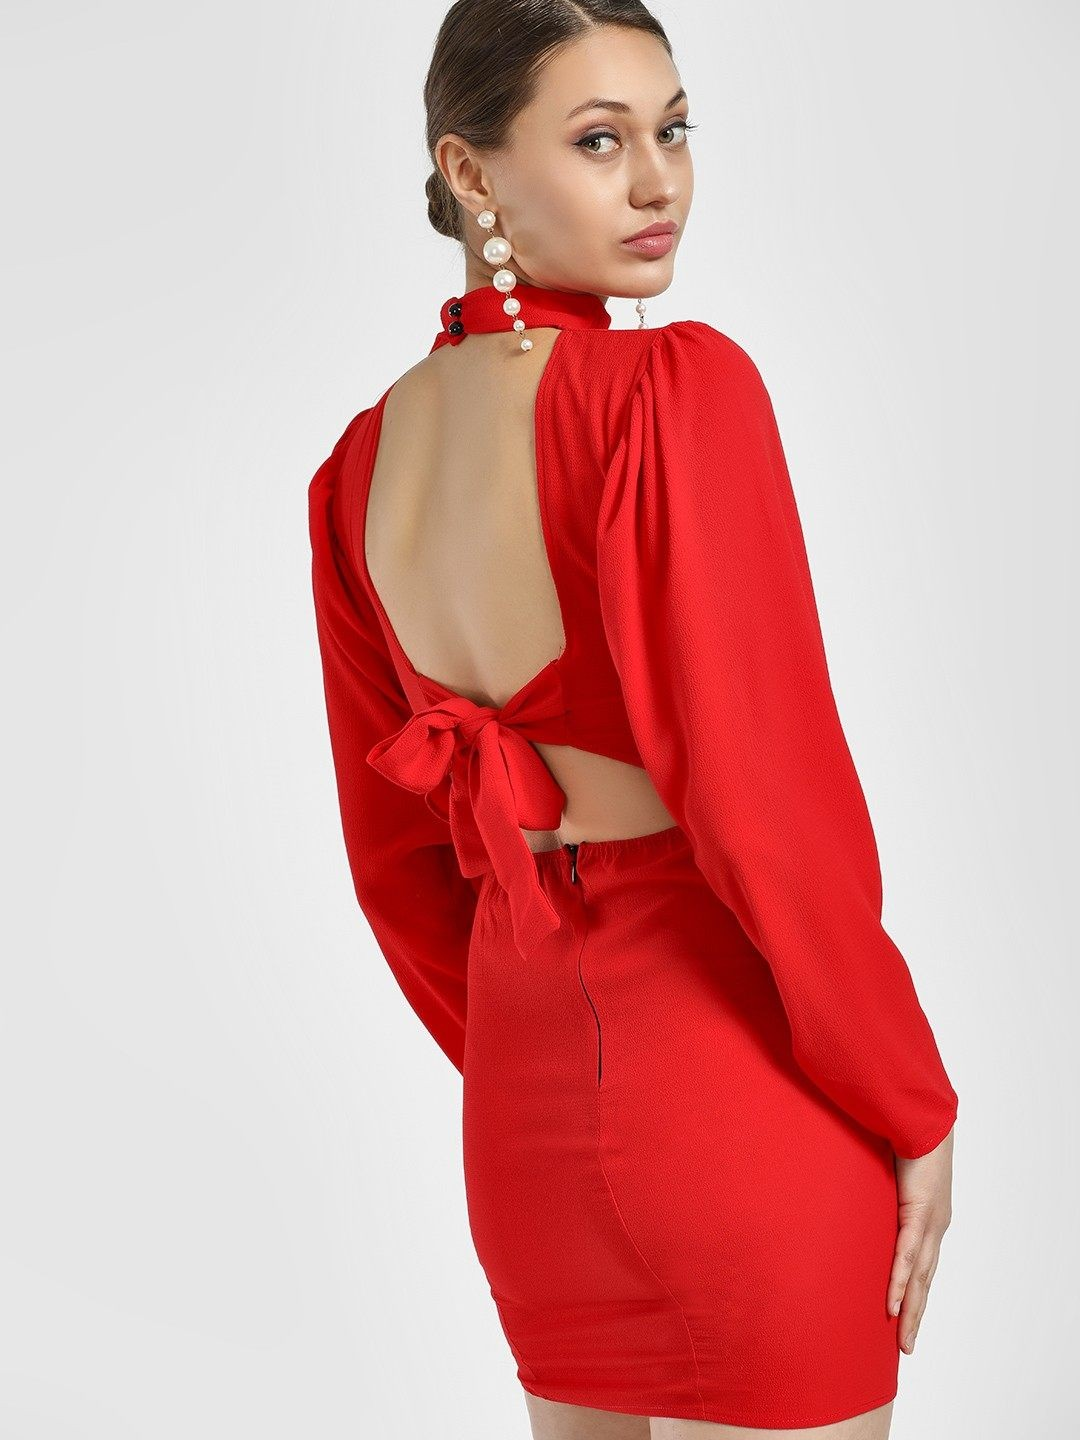 Lasula Red Back Cut Out Bodycon Dress 1